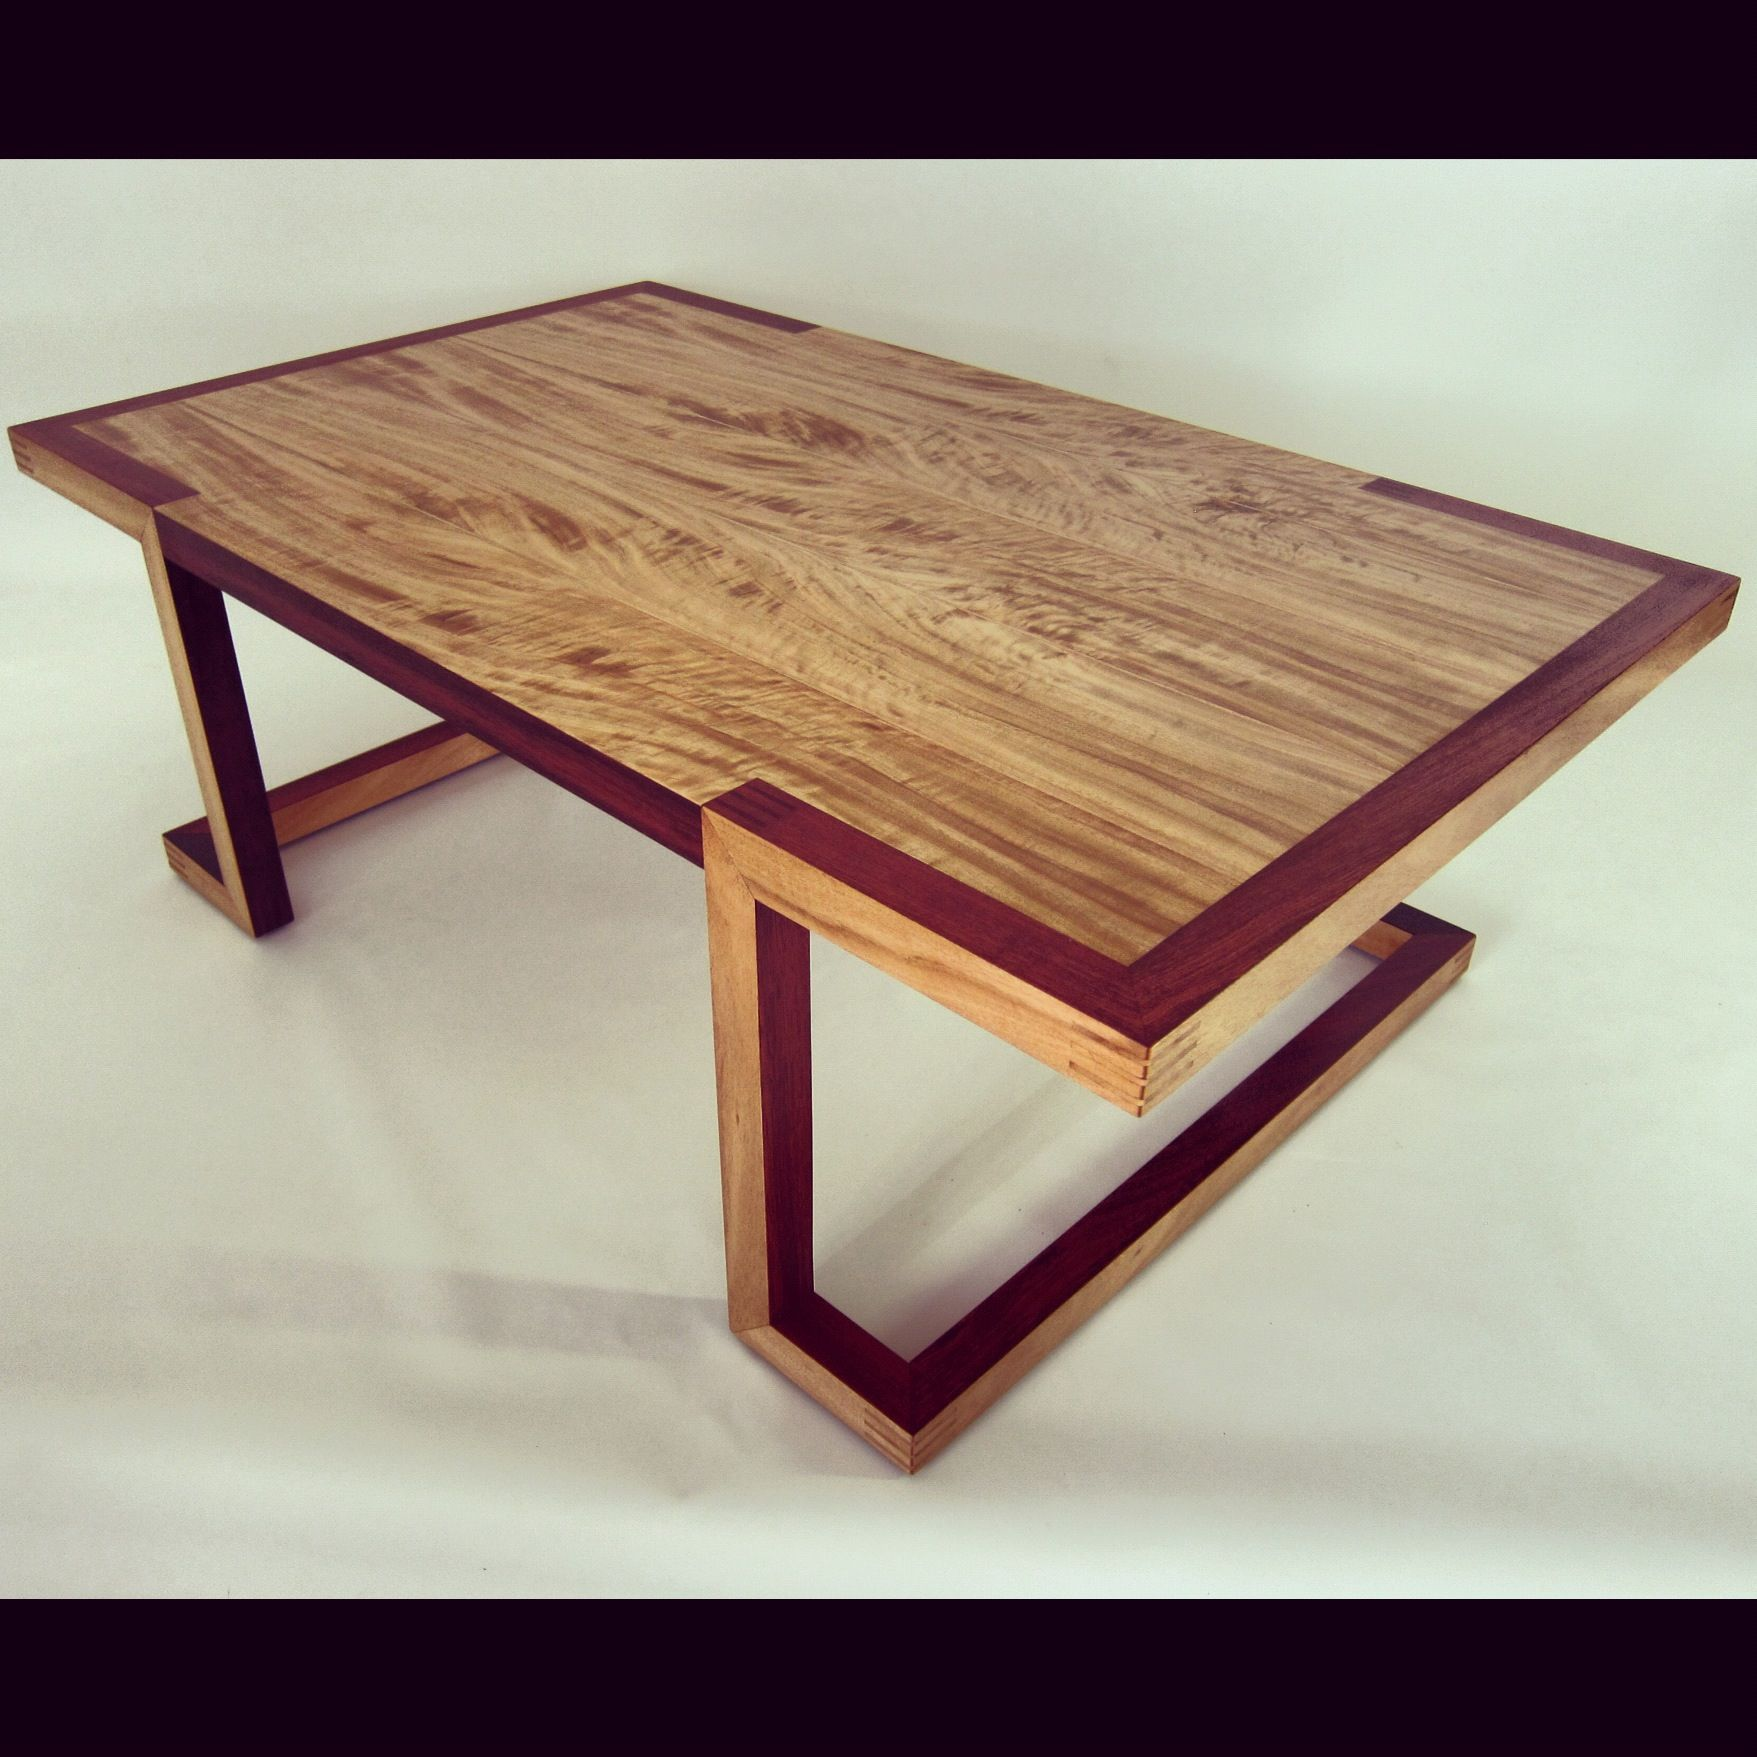 Contemporary coffee table made from Australian timbers Ironbark